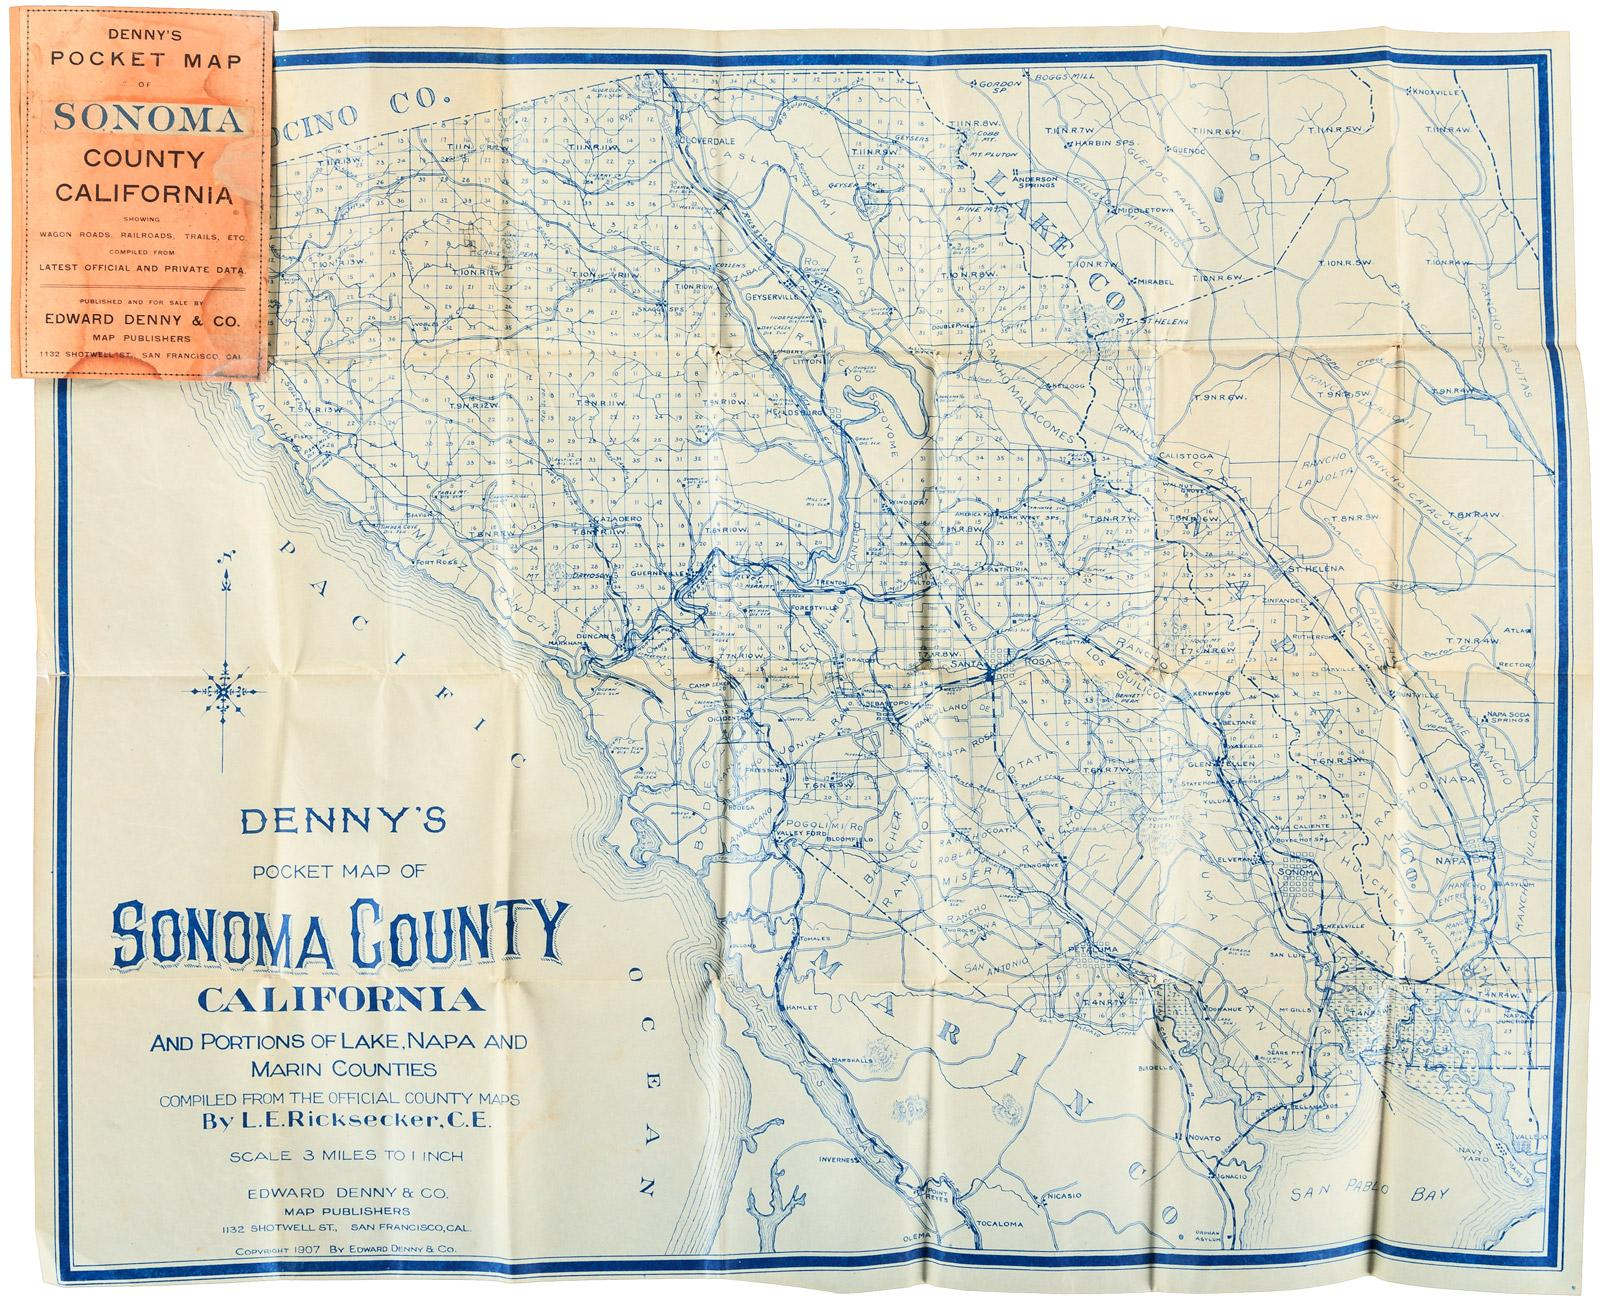 Denny S Pocket Map Of Sonoma County California And Portions Of Lake